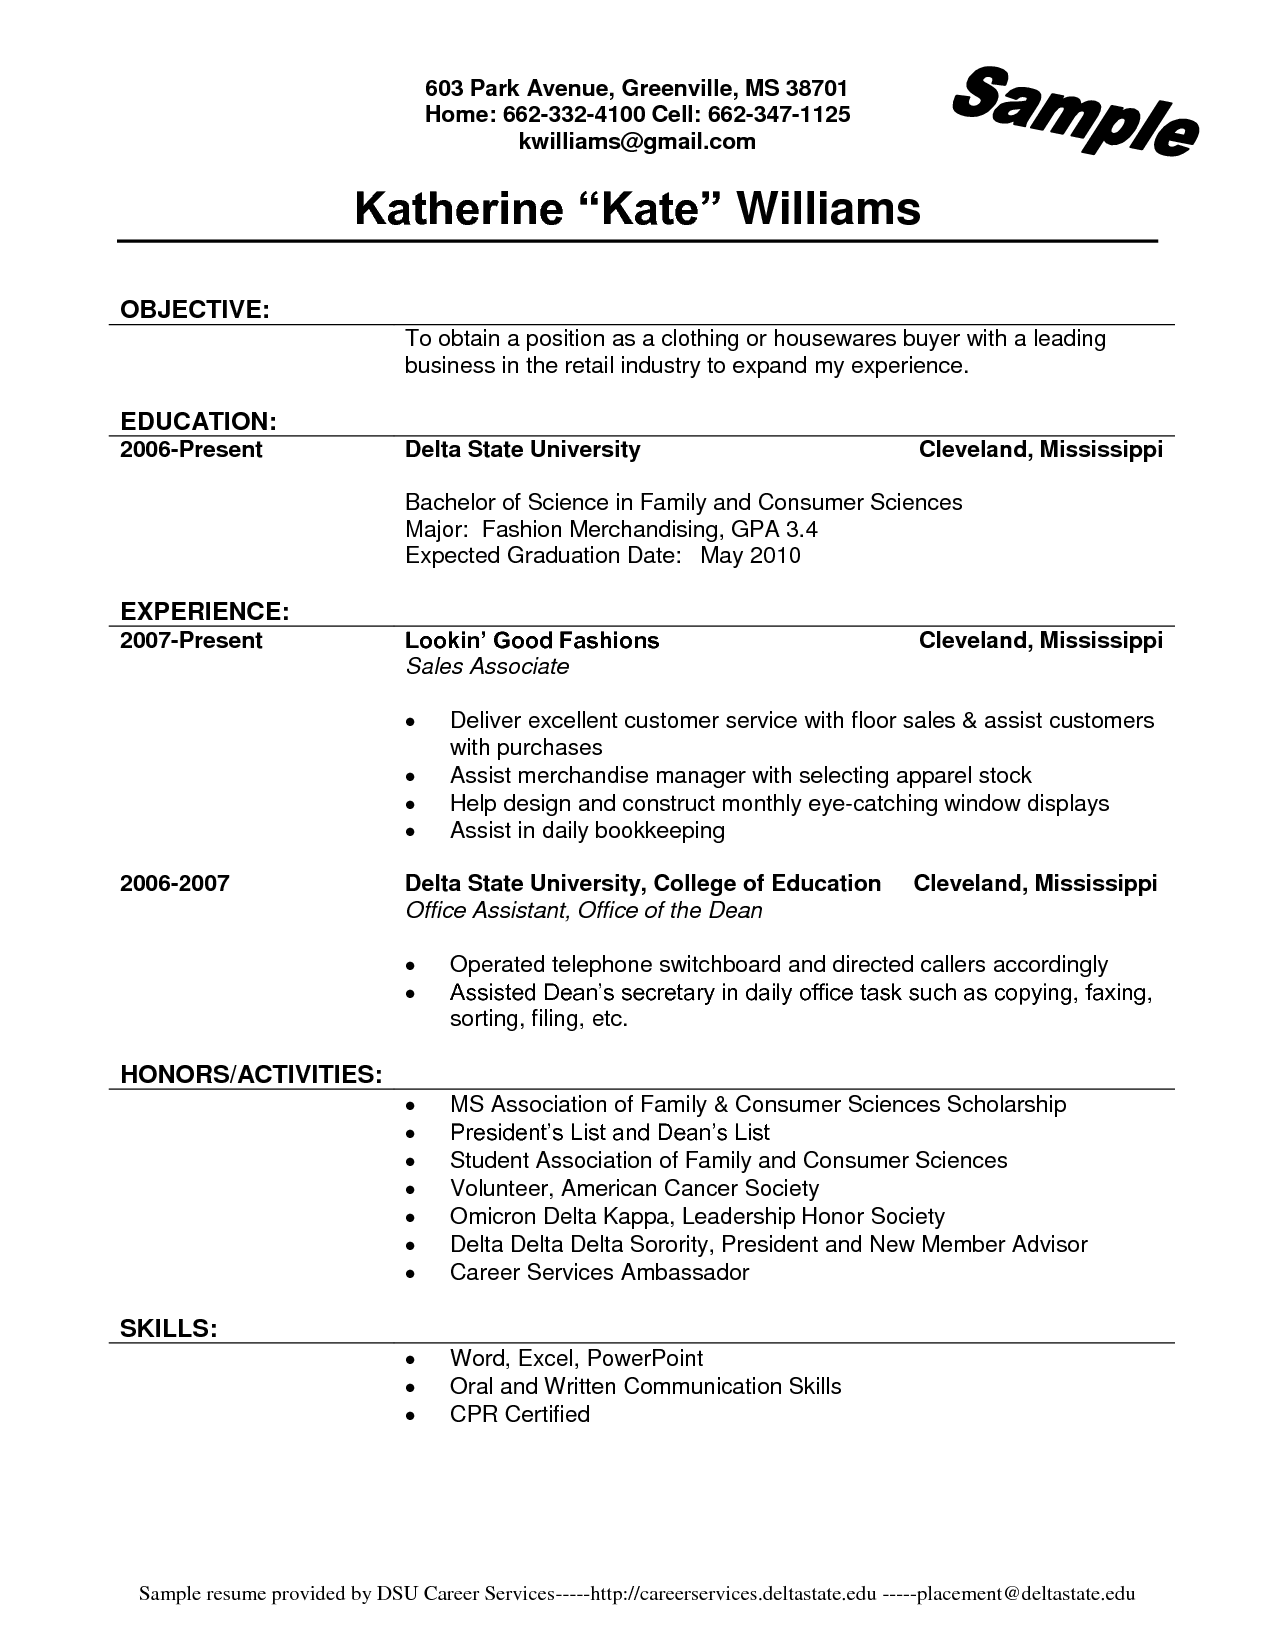 Resume For Retail Job Sample Buzznow